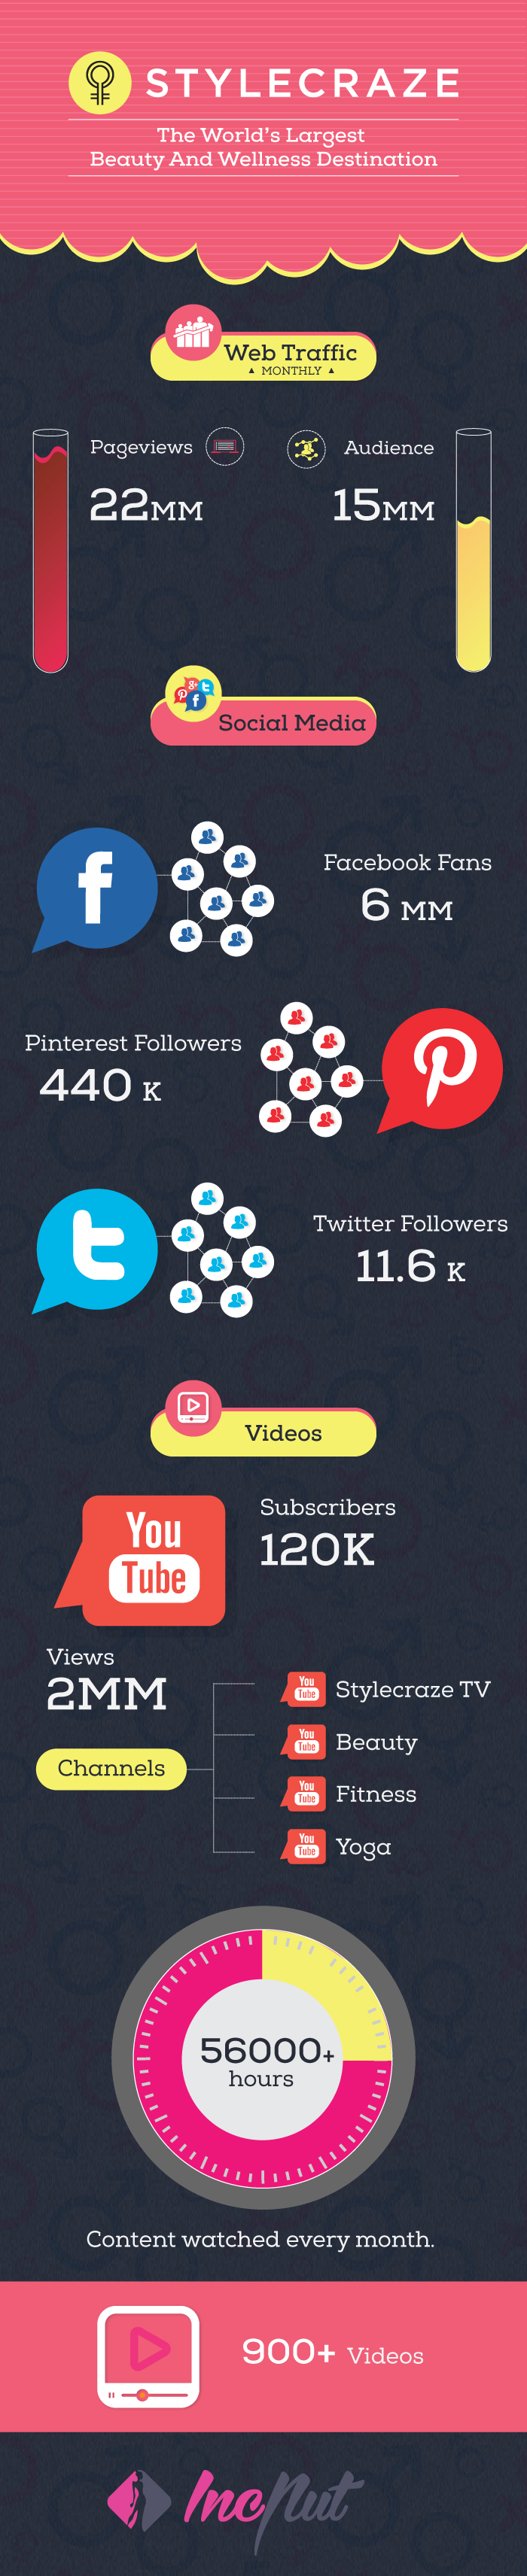 Stylecraze-Traffic-numbers-infographic